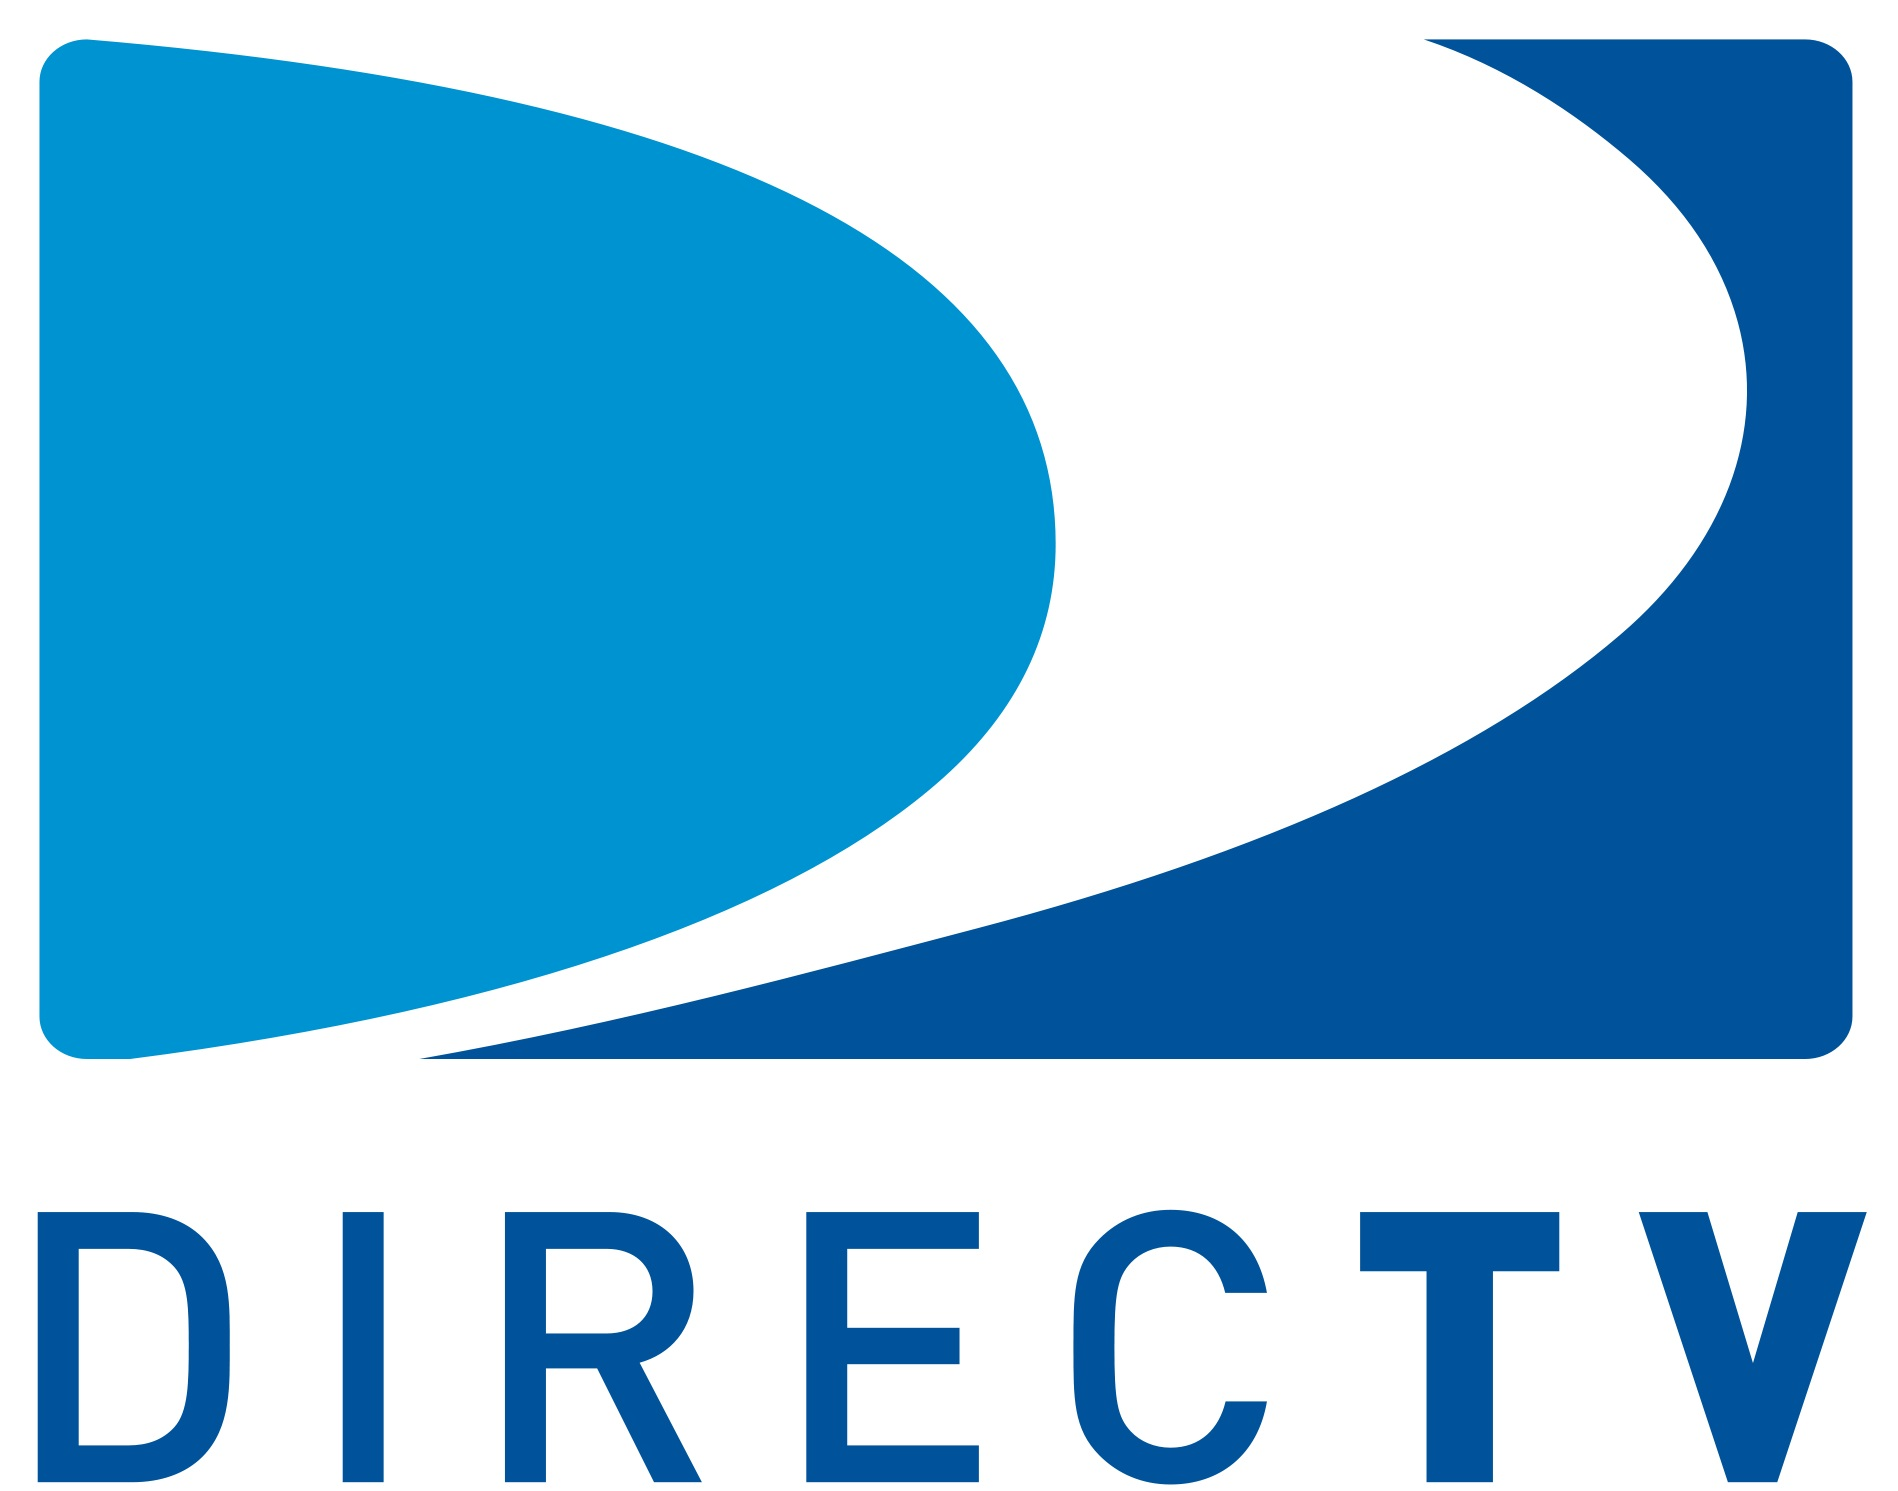 Click here to go to the DirecTv website